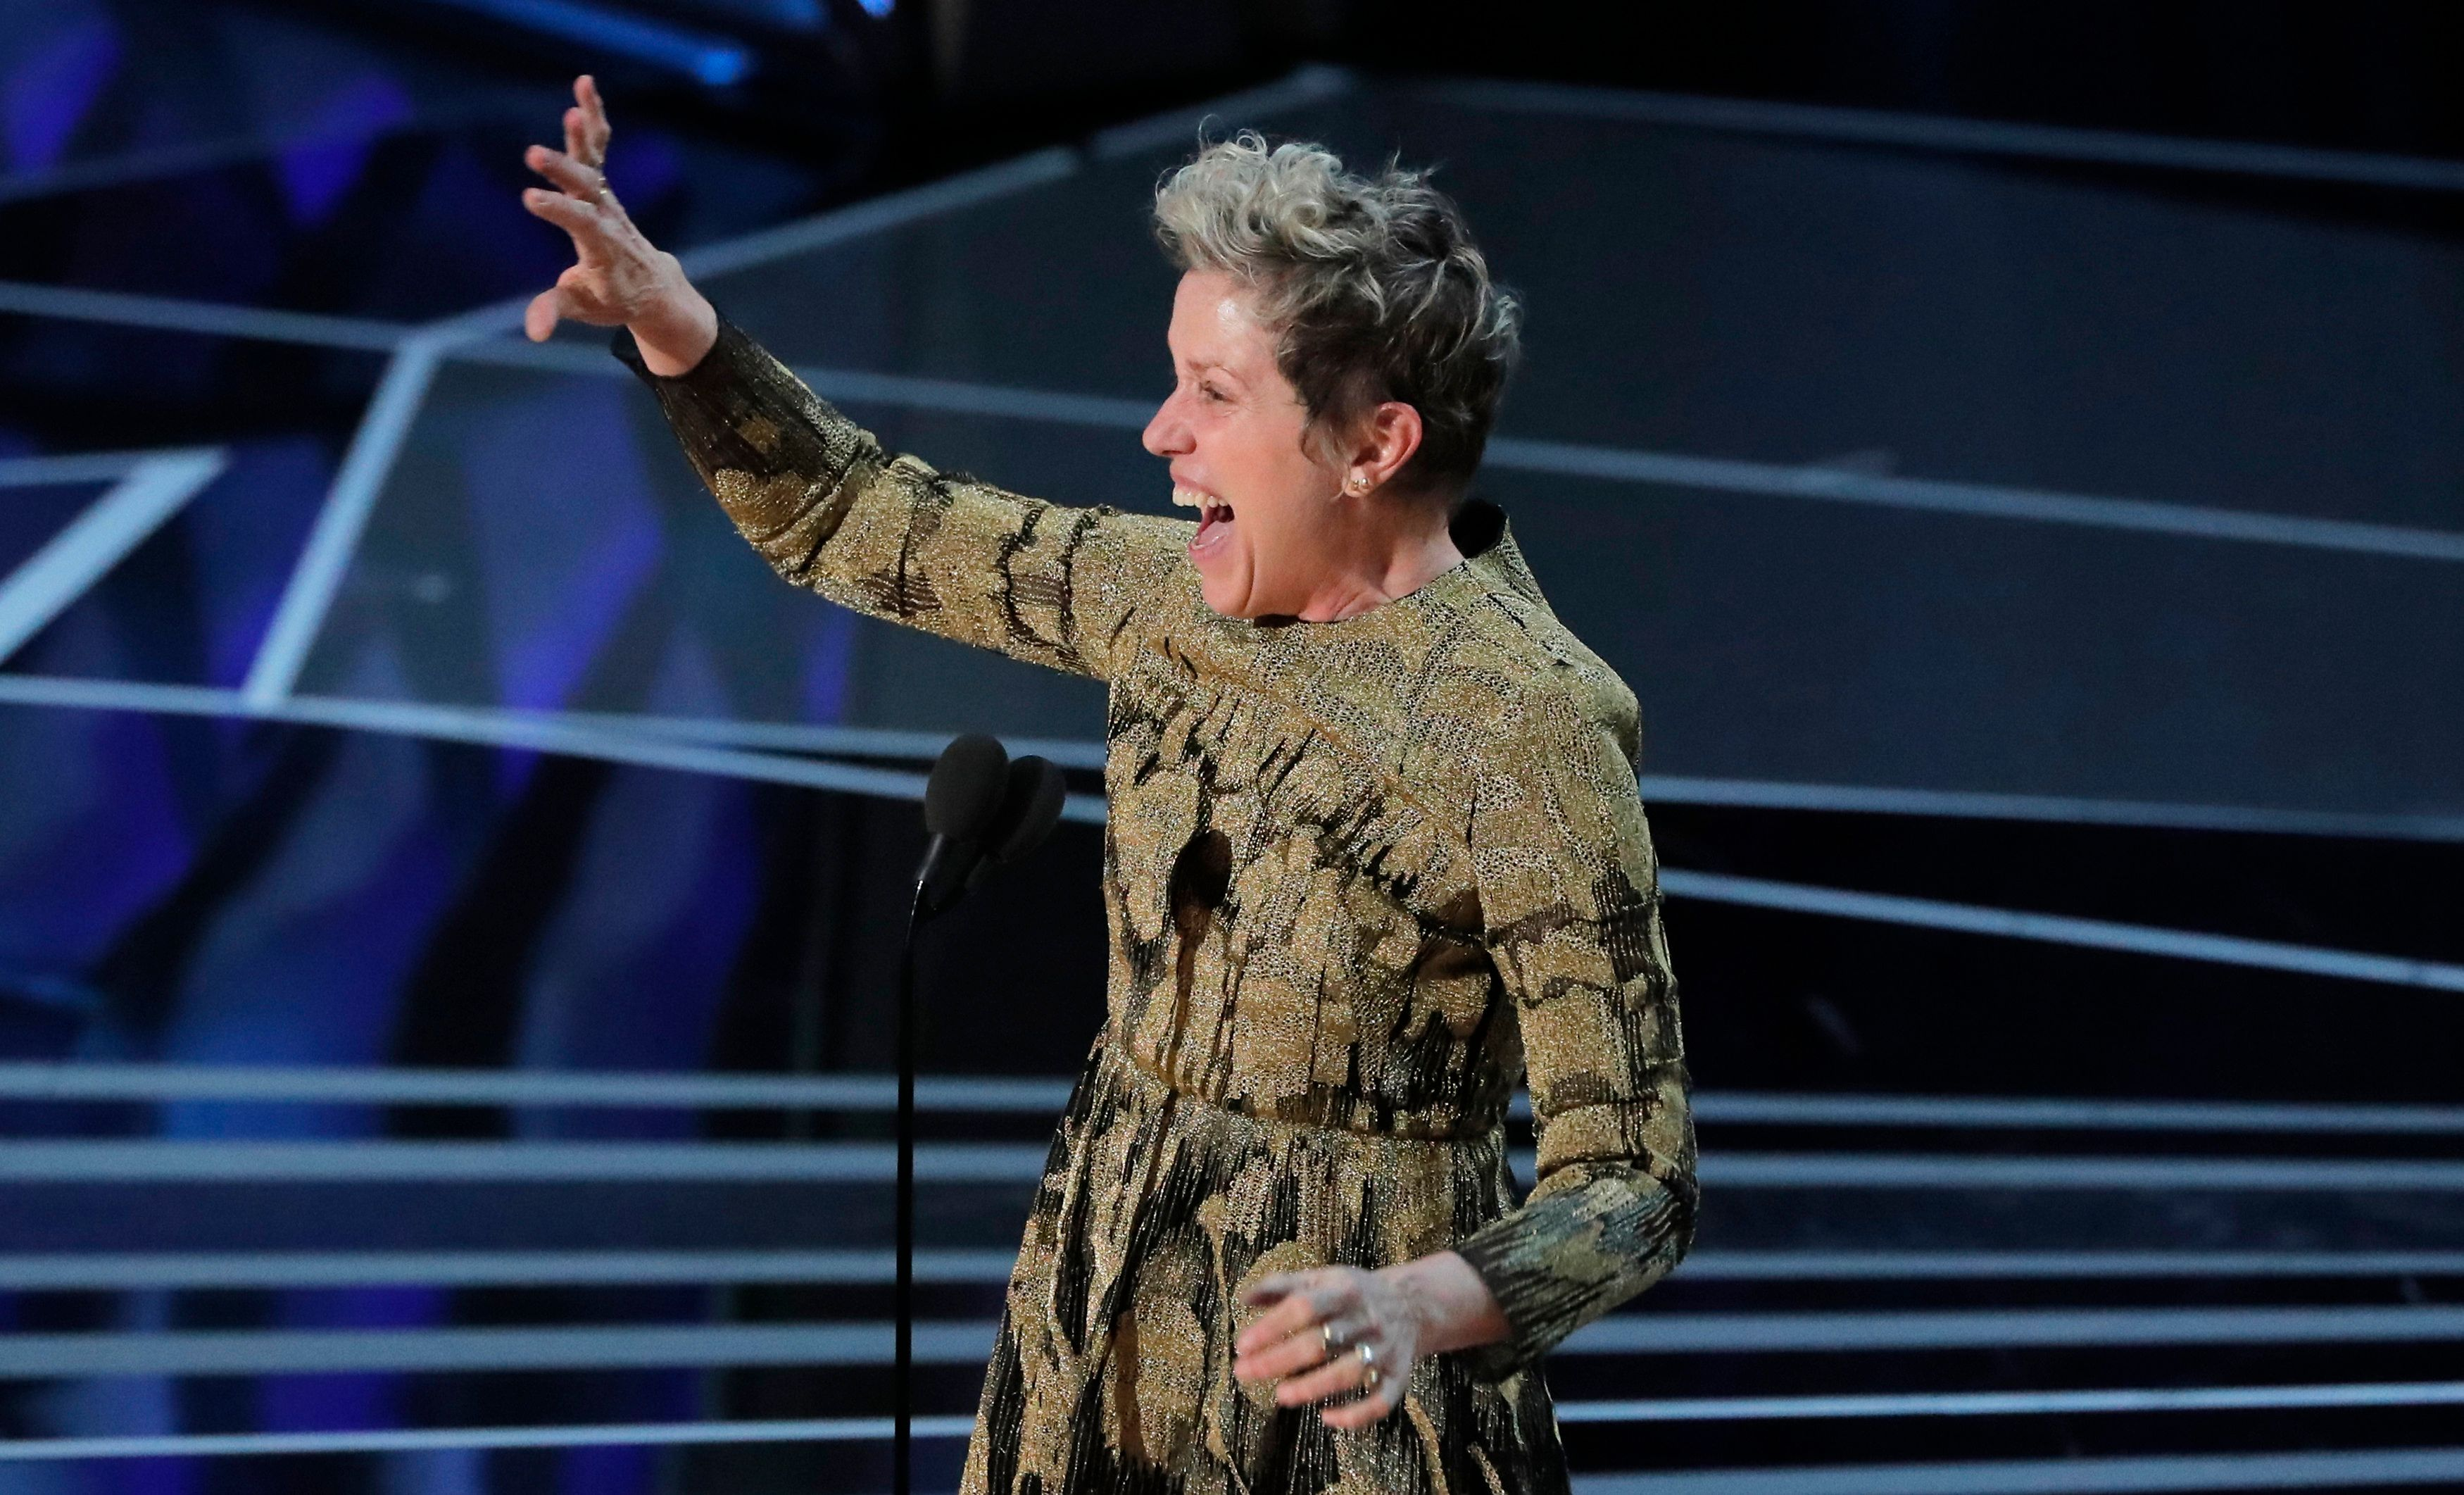 90th Academy Awards - Oscars Show – Hollywood - Frances McDormand accepts the Best Actress Oscar for her performance in Three Billboards Outside Ebbing, Missouri. REUTERS/Lucas Jackson